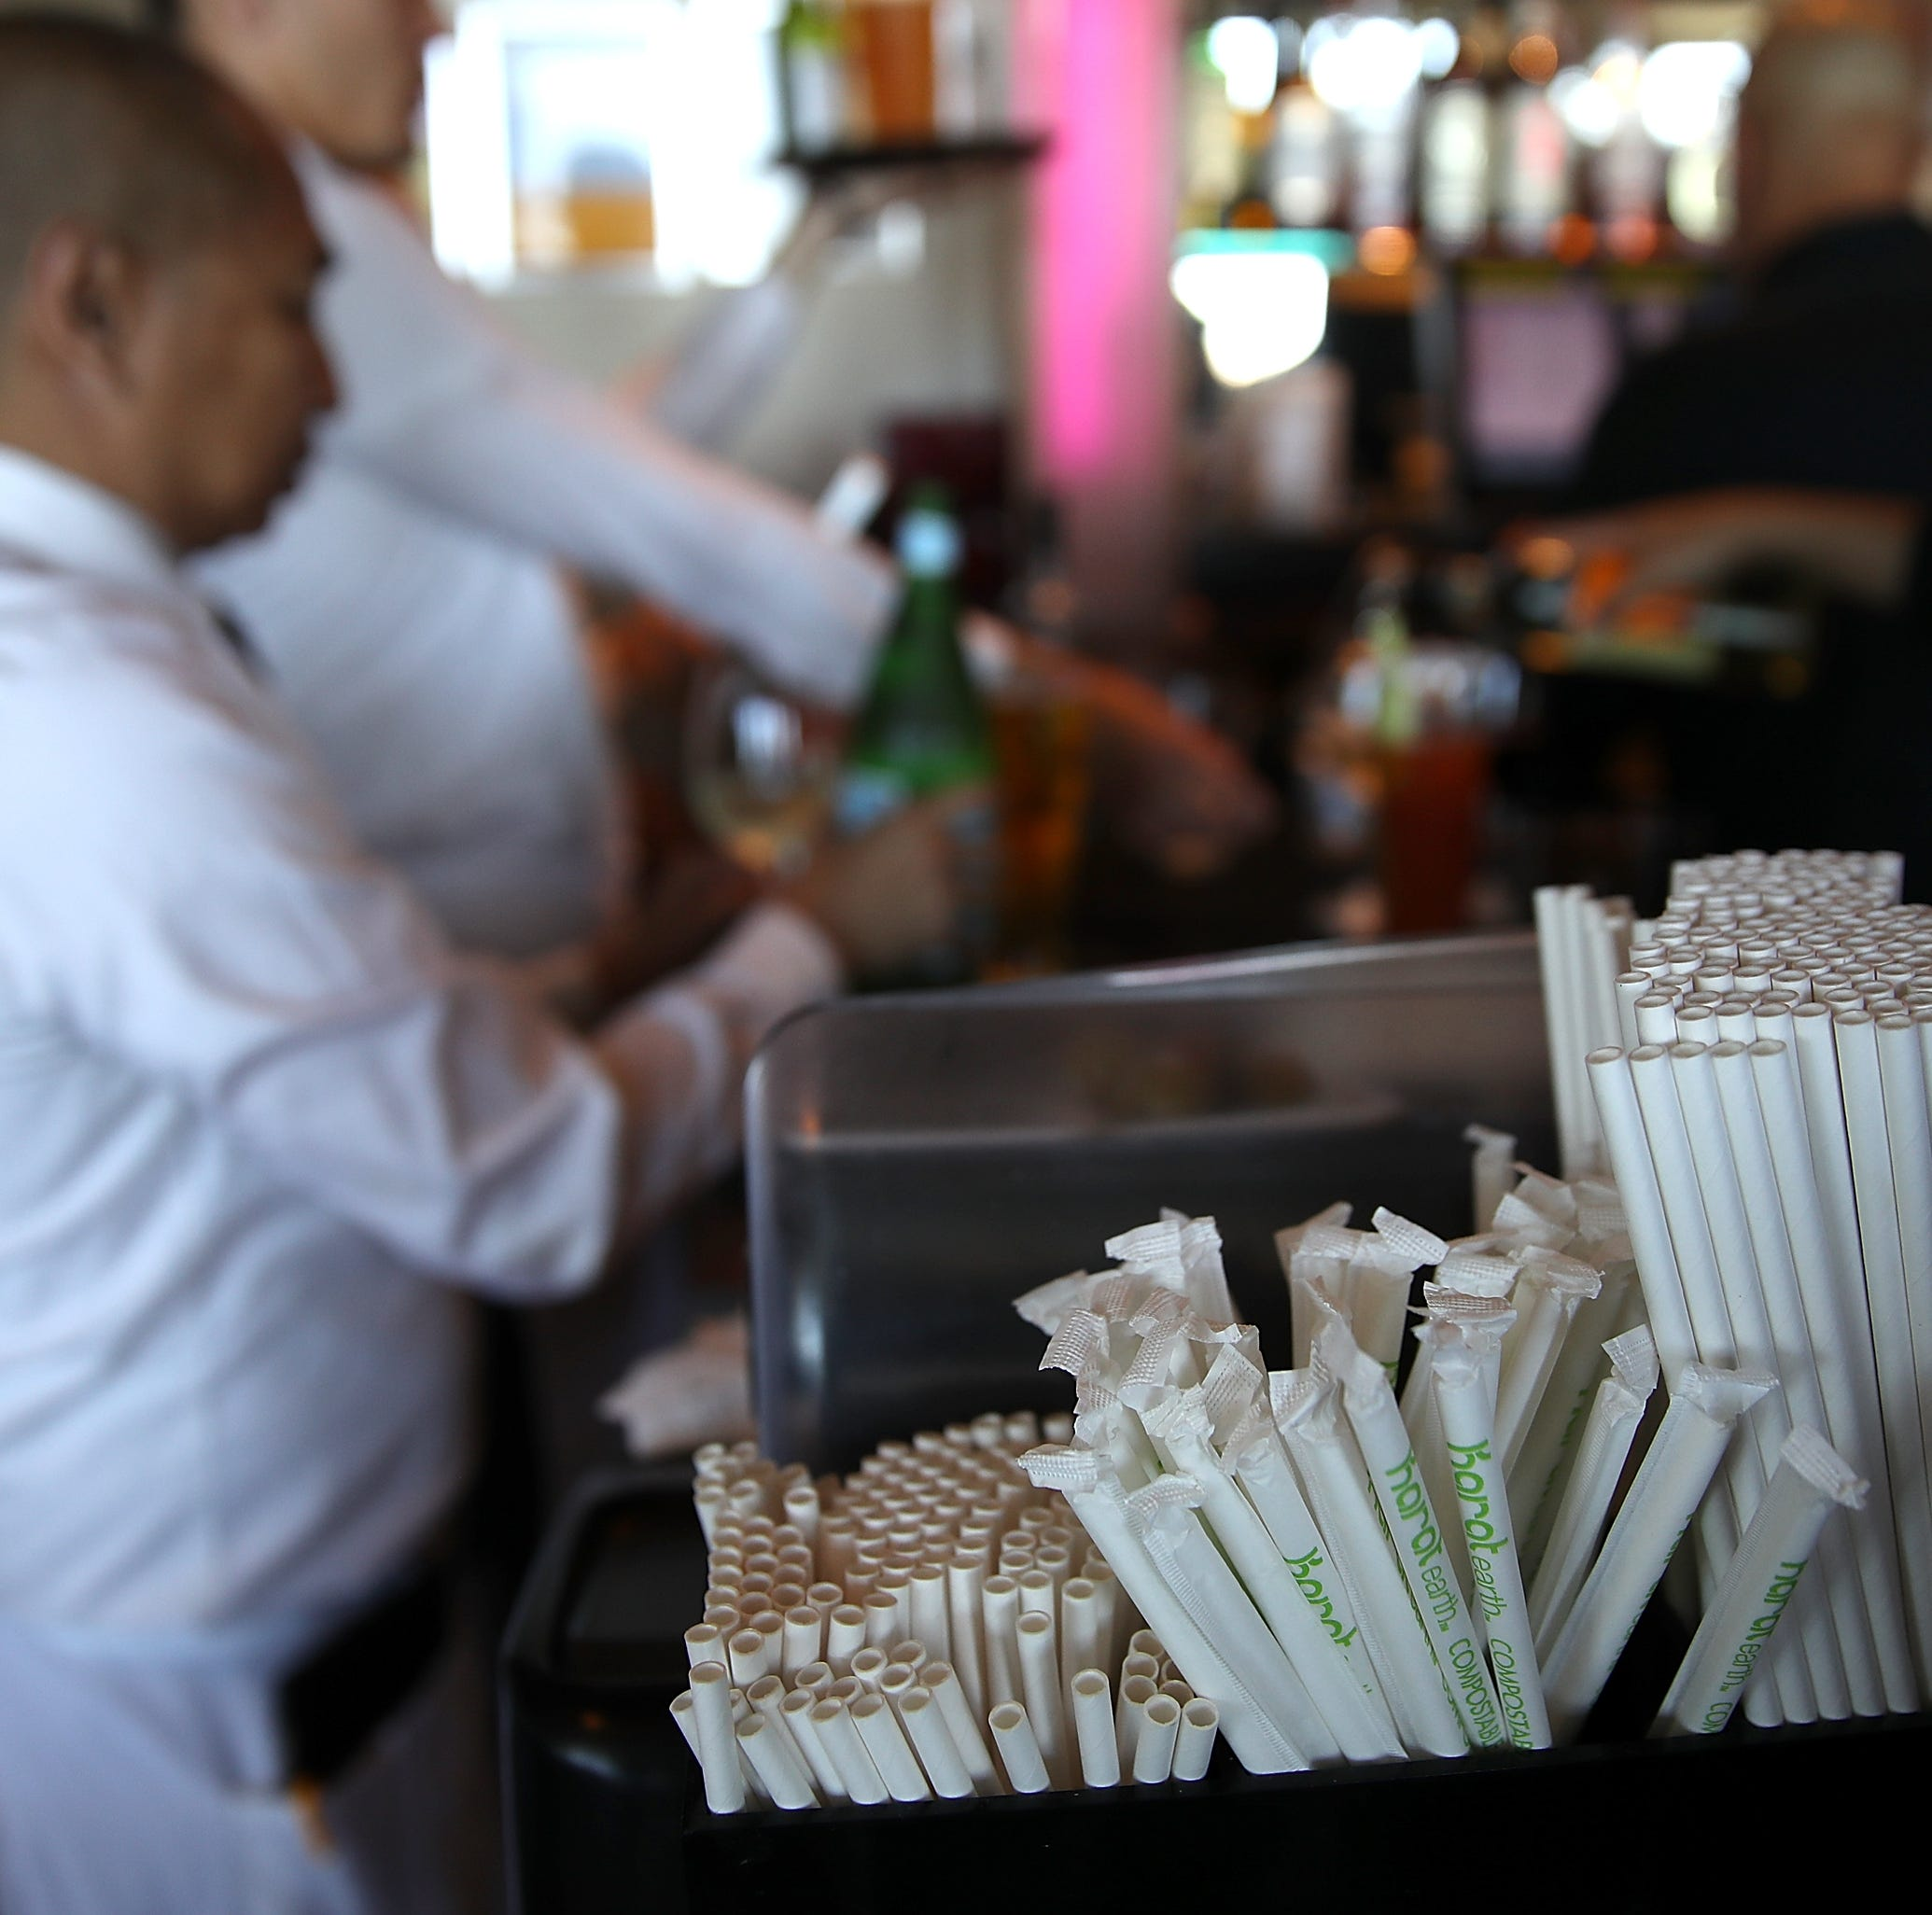 Cathedral City isn't banning plastic straws yet. But the conversation isn't over